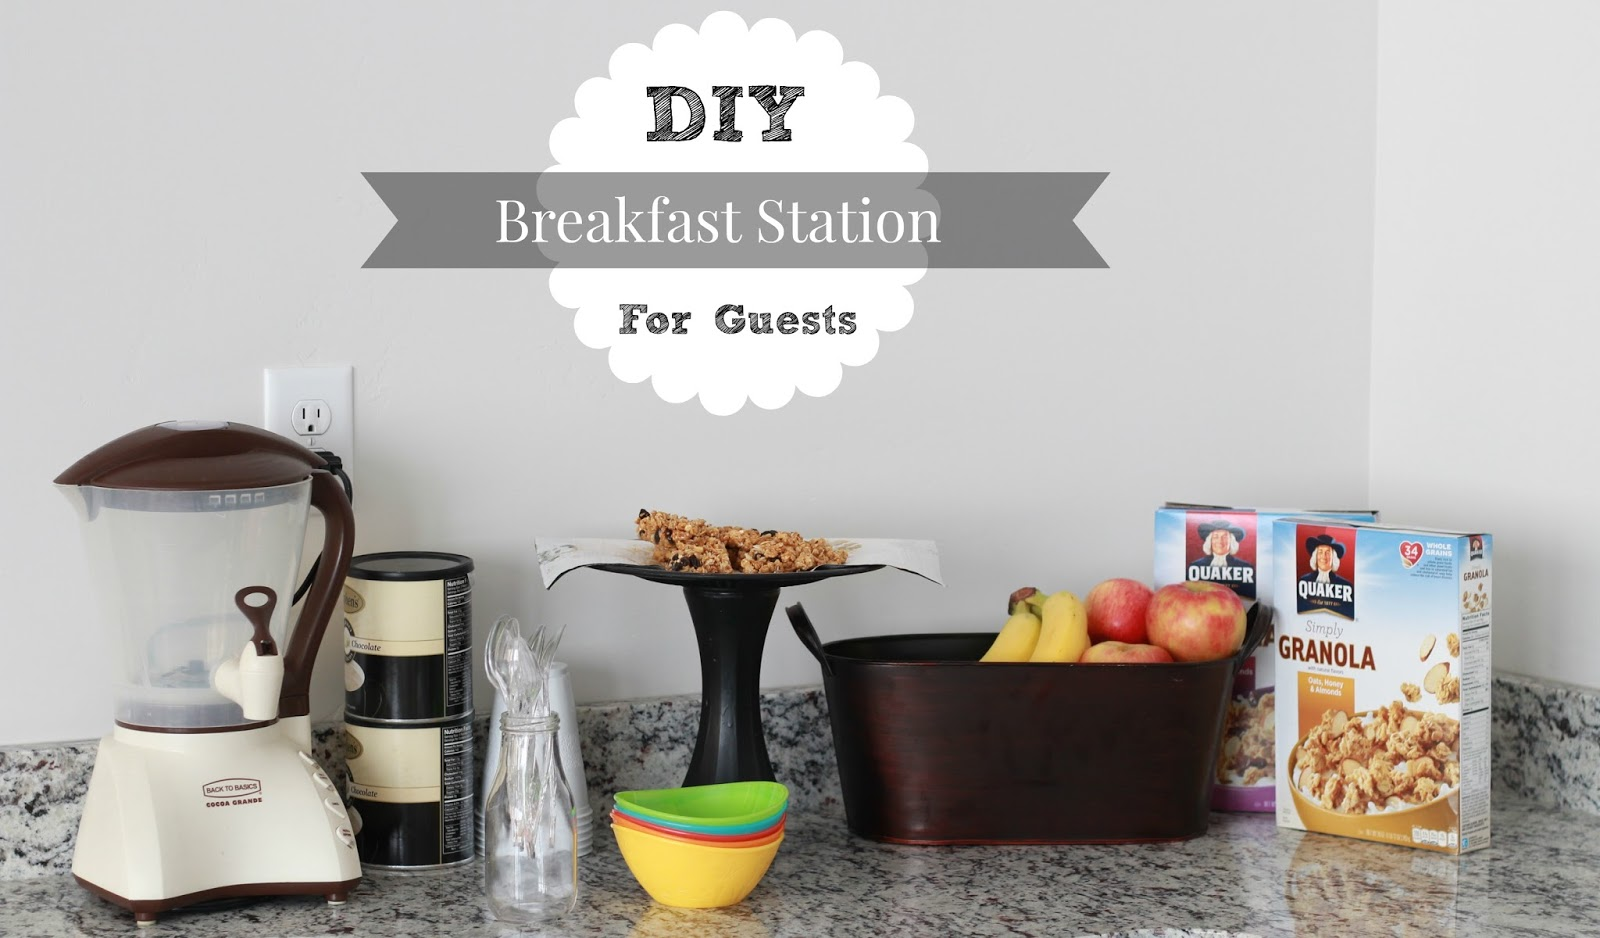 DIY Breakfast Station for Guests+ Easy Granola Breakfast Bar Recipe graphic